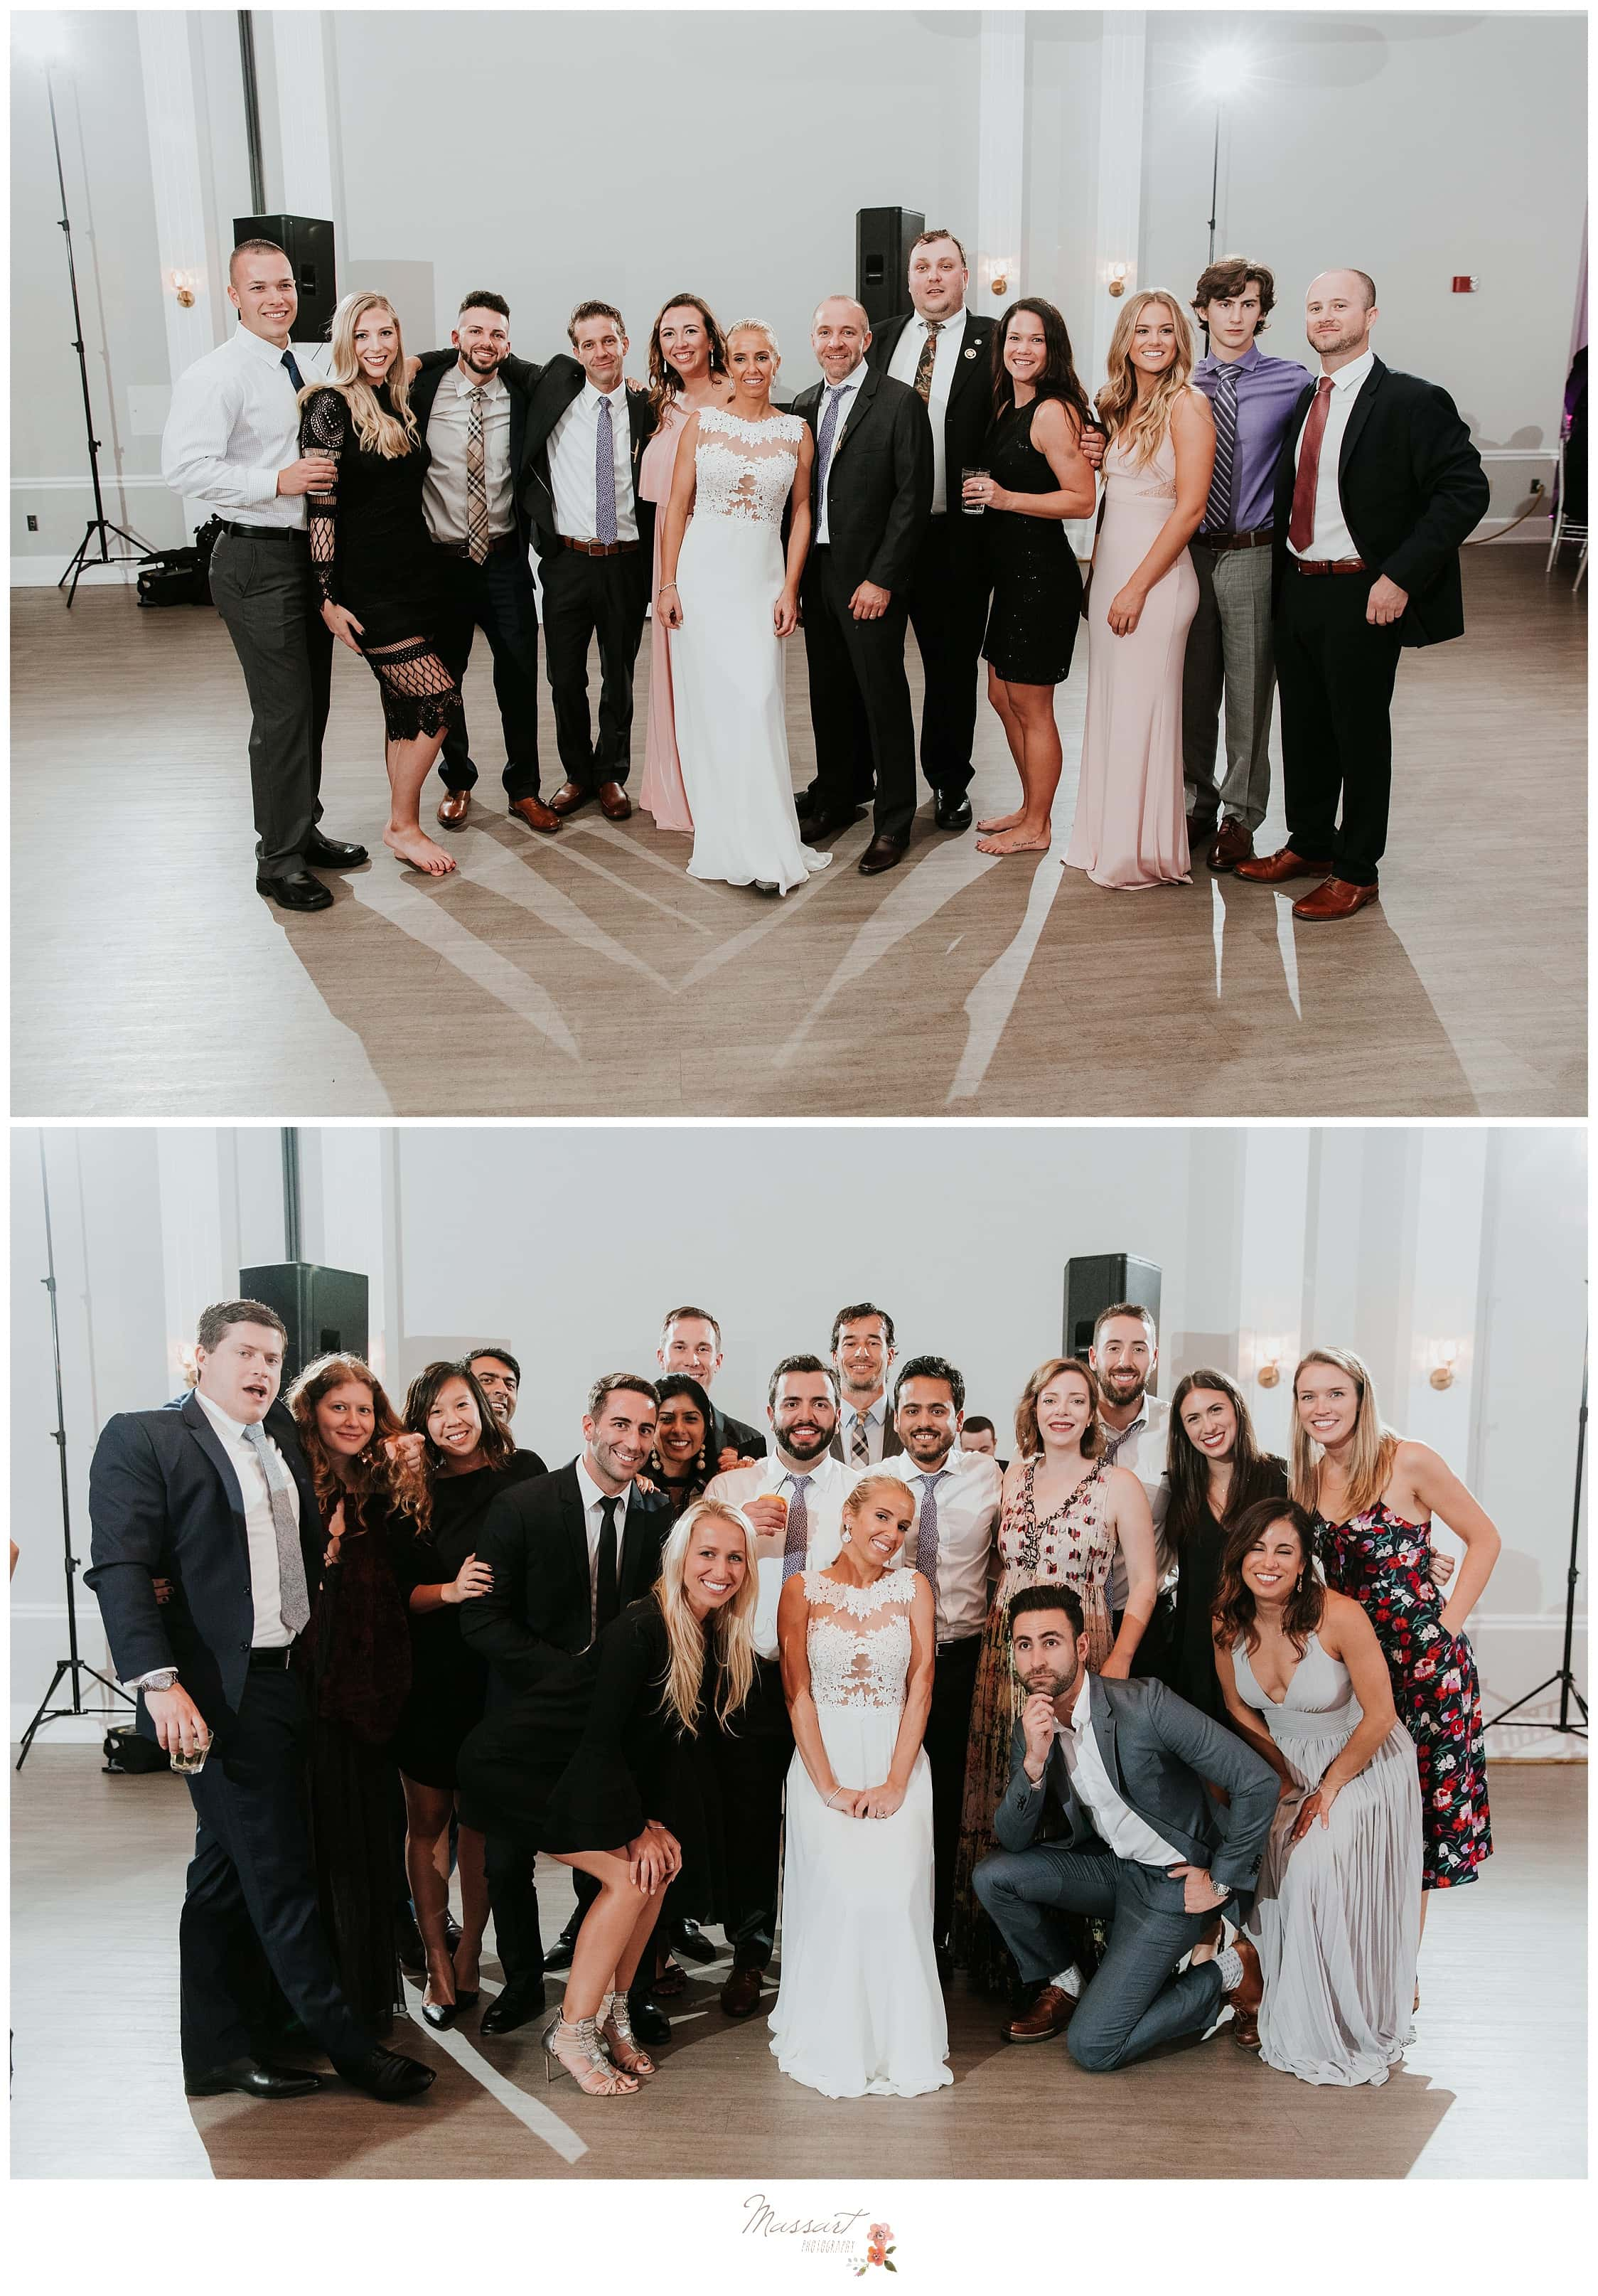 Bride and groom with their friends at the wedding reception photographed by Massart Photography Rhode Island